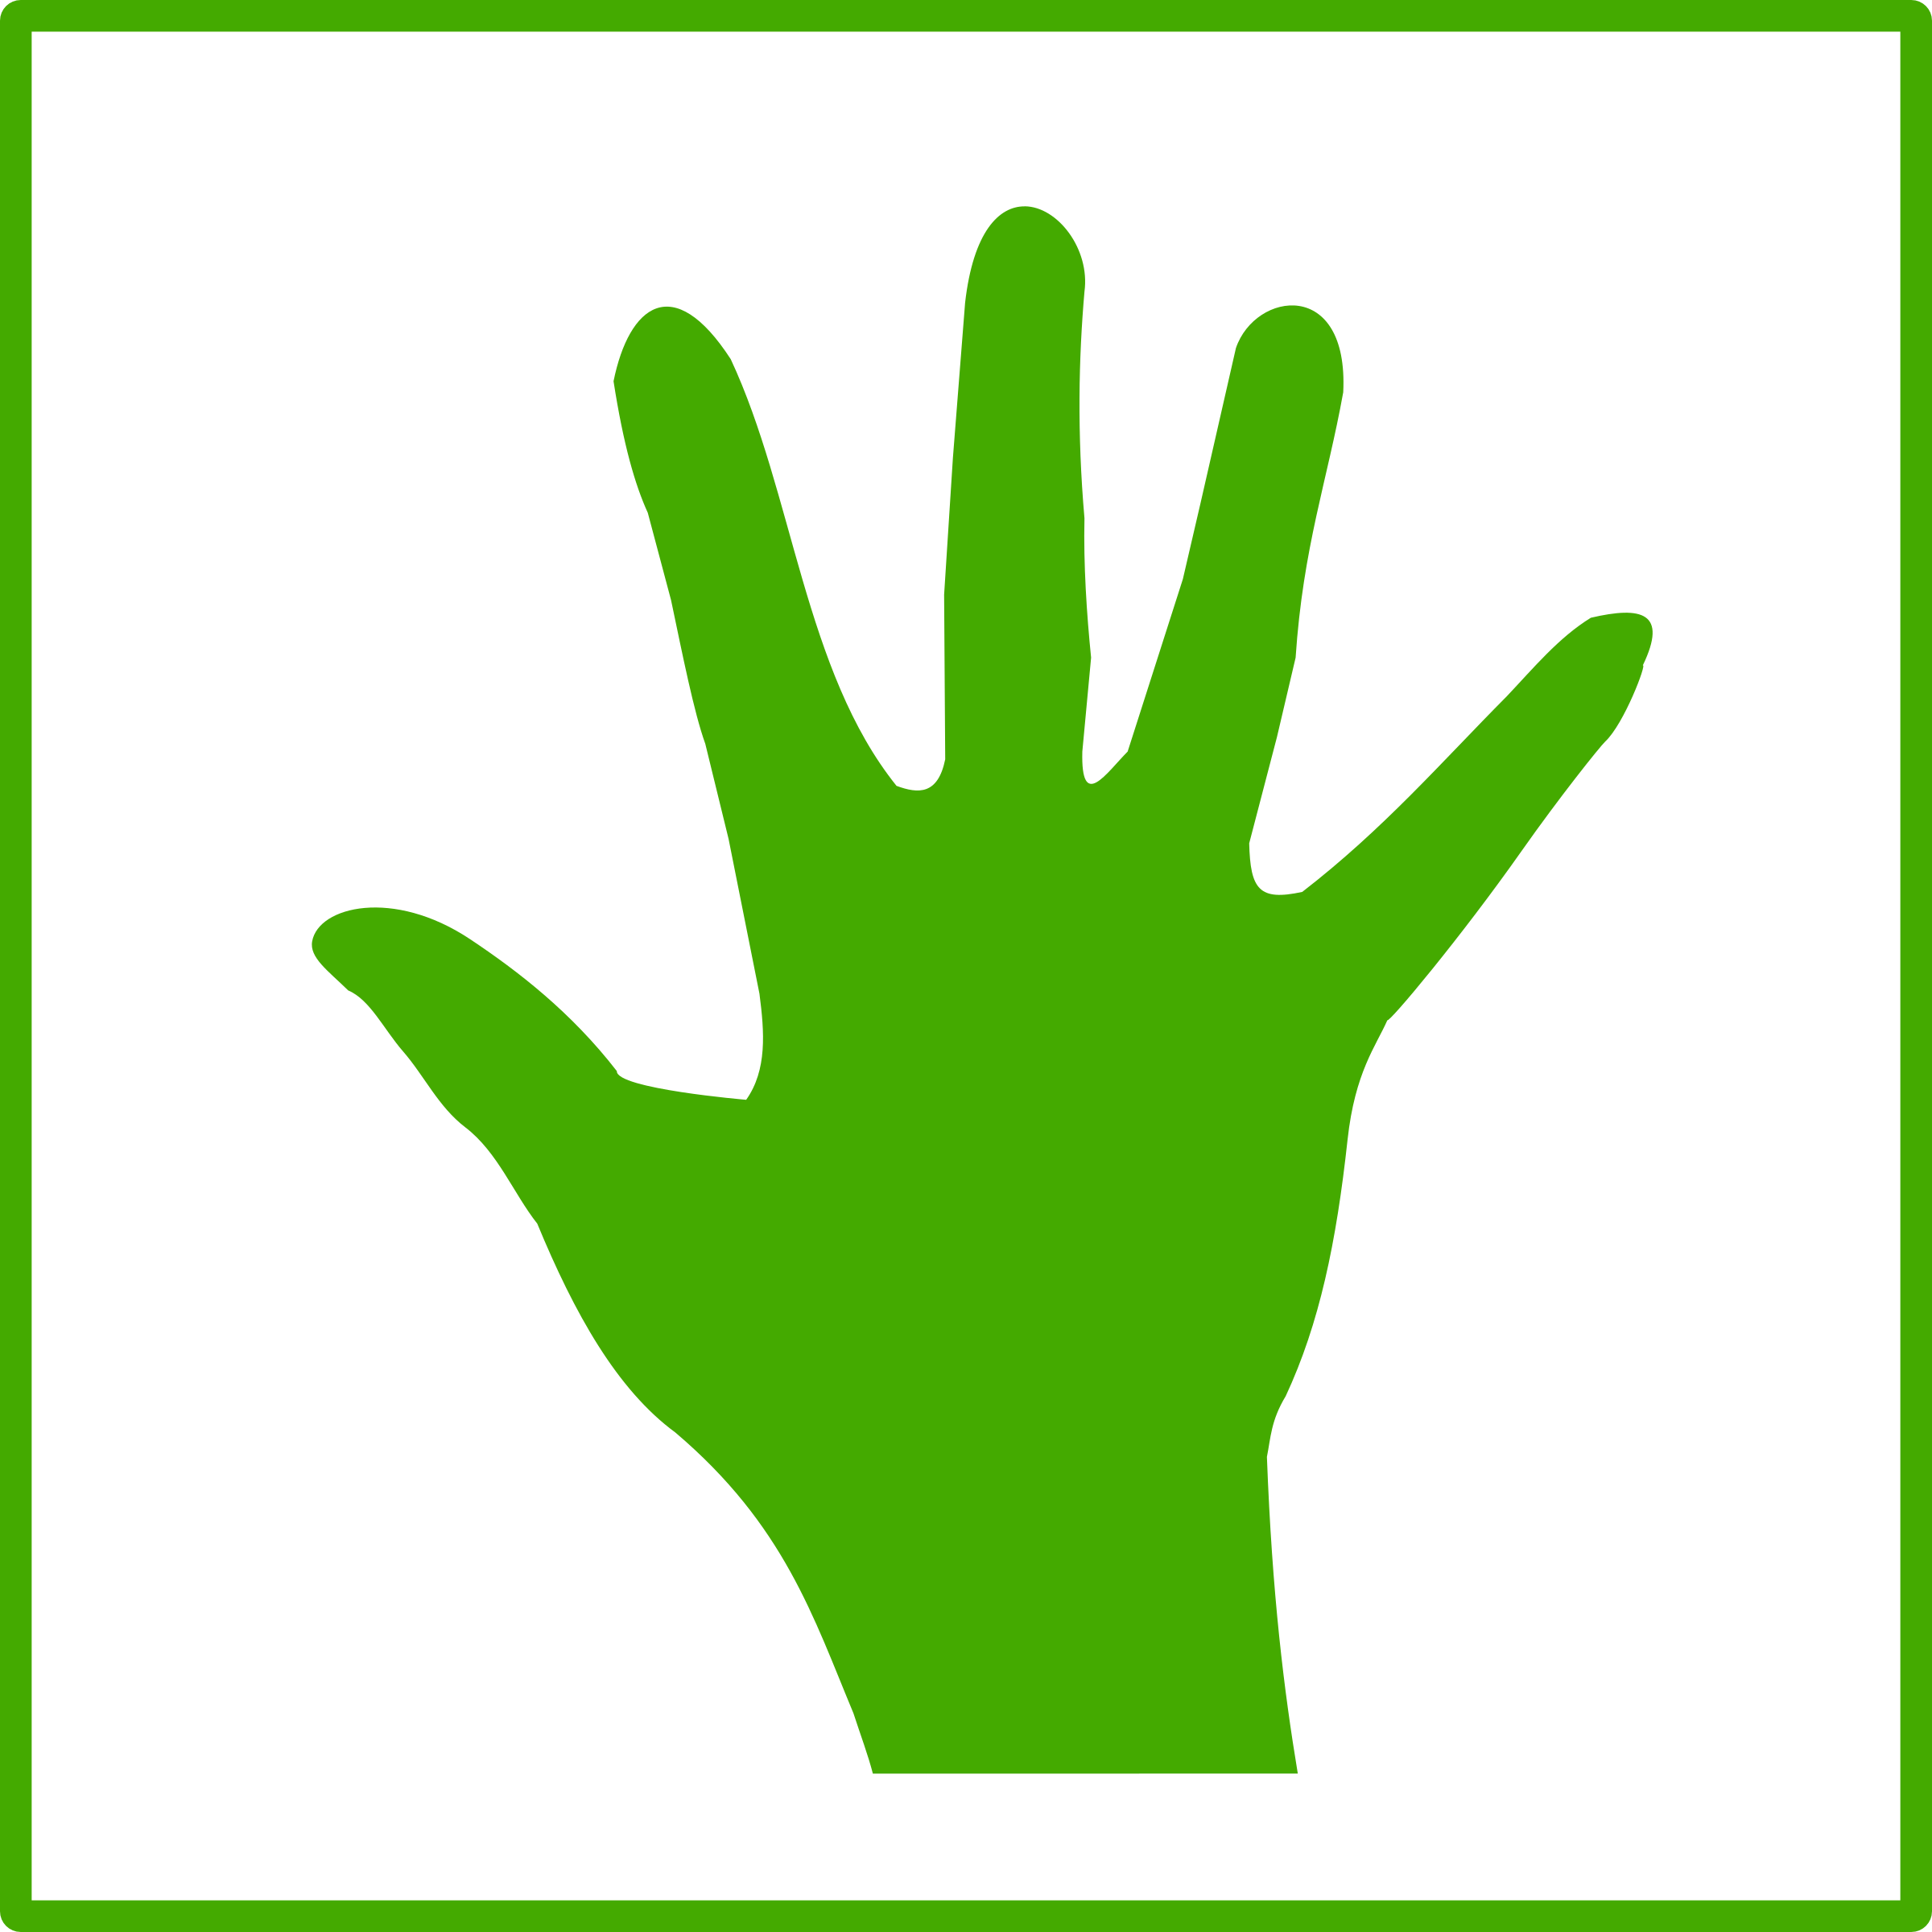 eco green hand icon by dominiquechappard